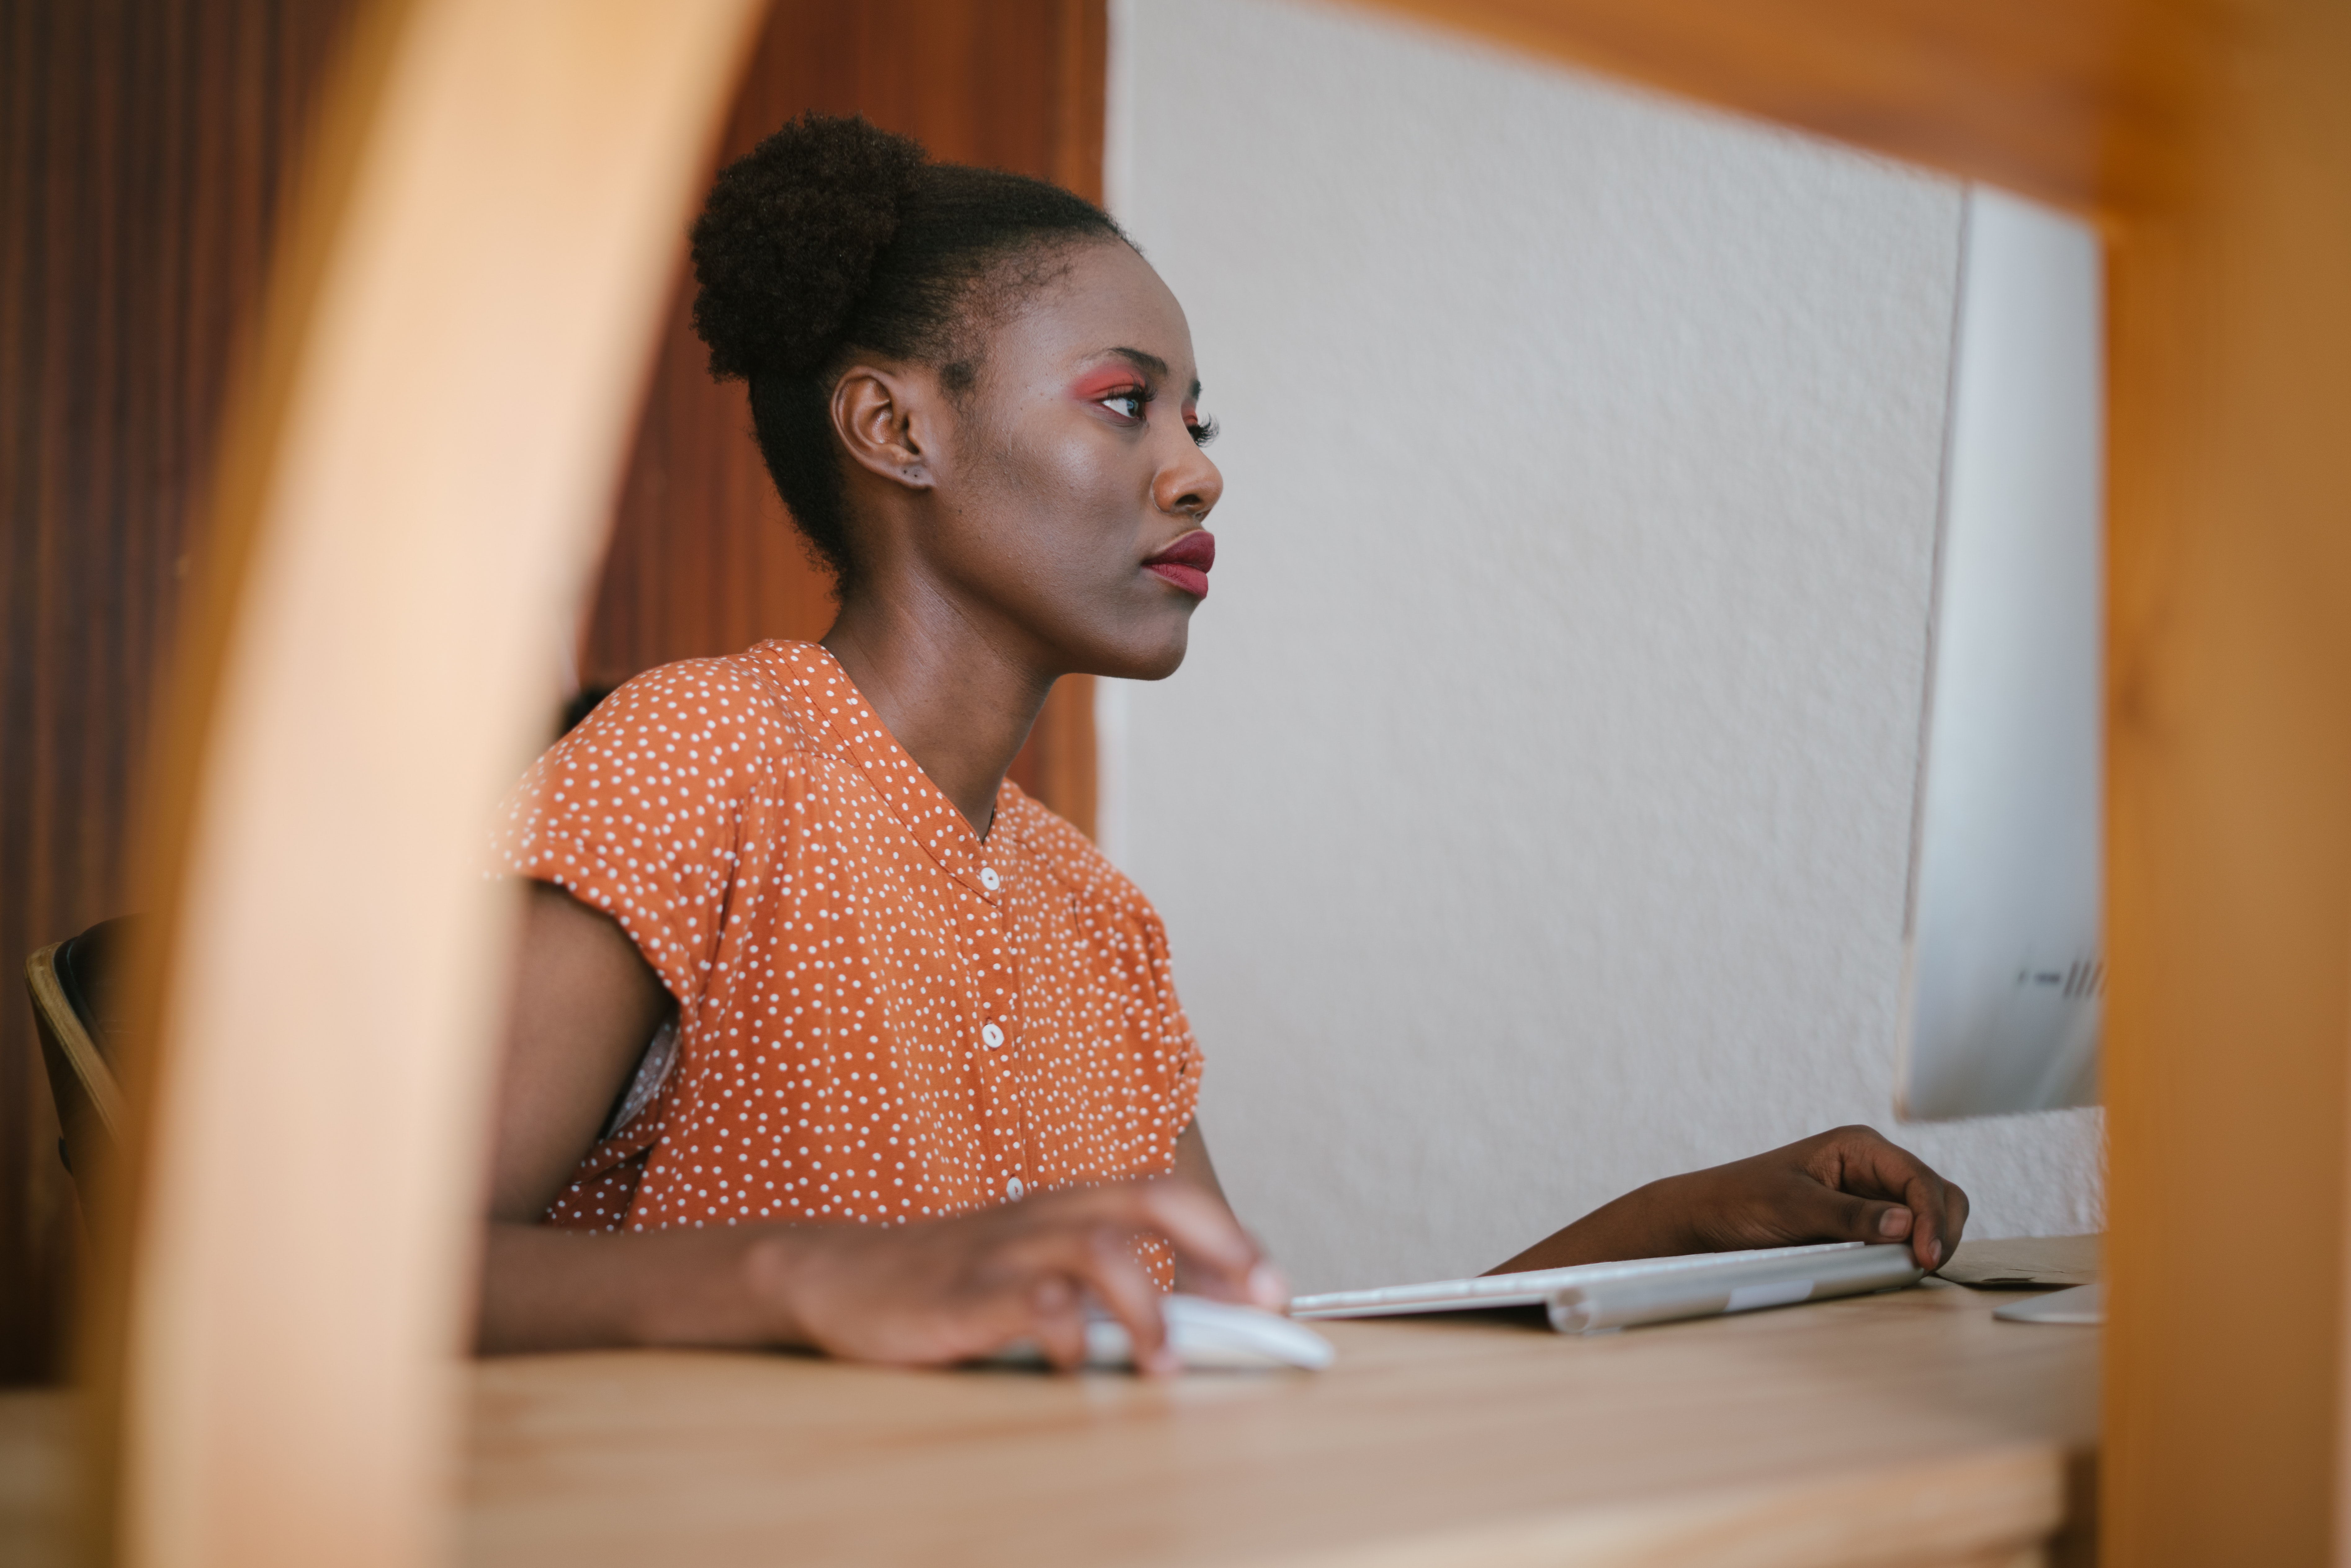 beautiful-woman-computer-concentration-3059700